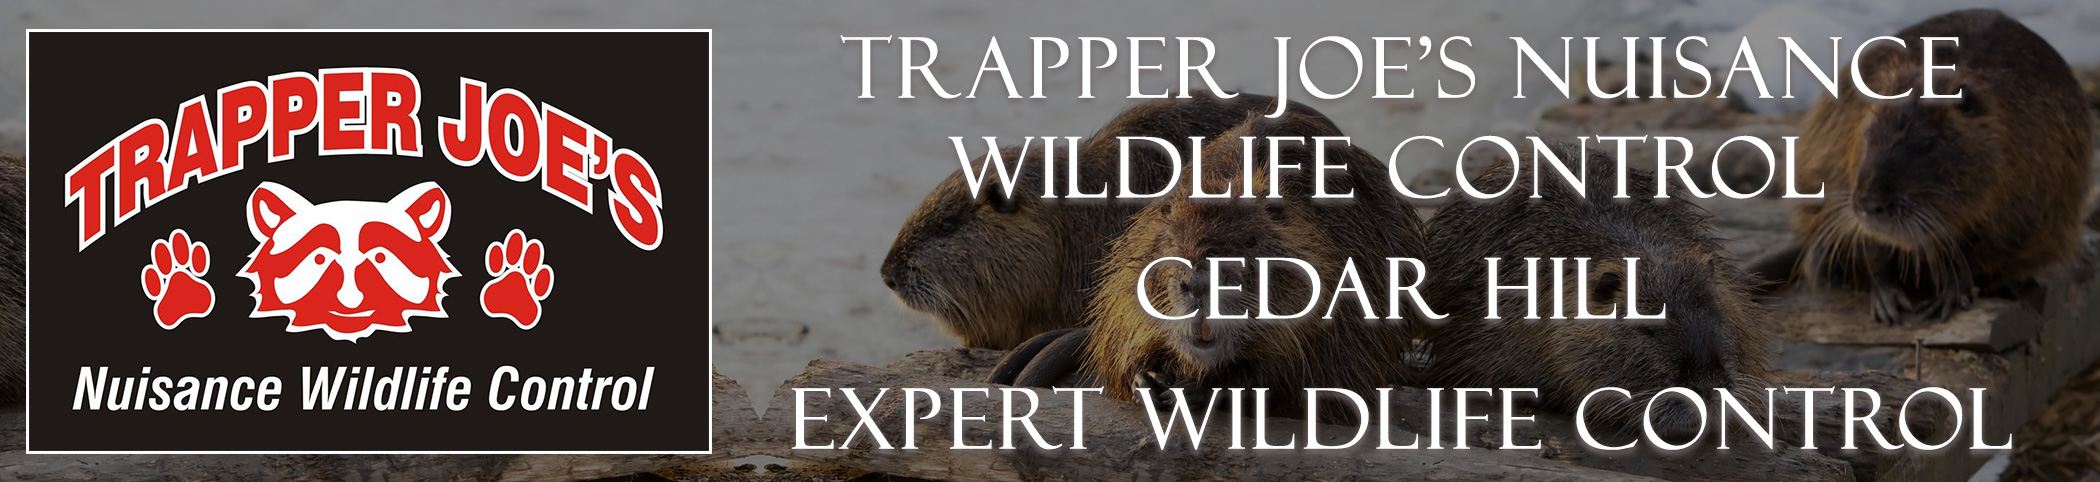 Trapper Joes Cedar Hill Missouri header image